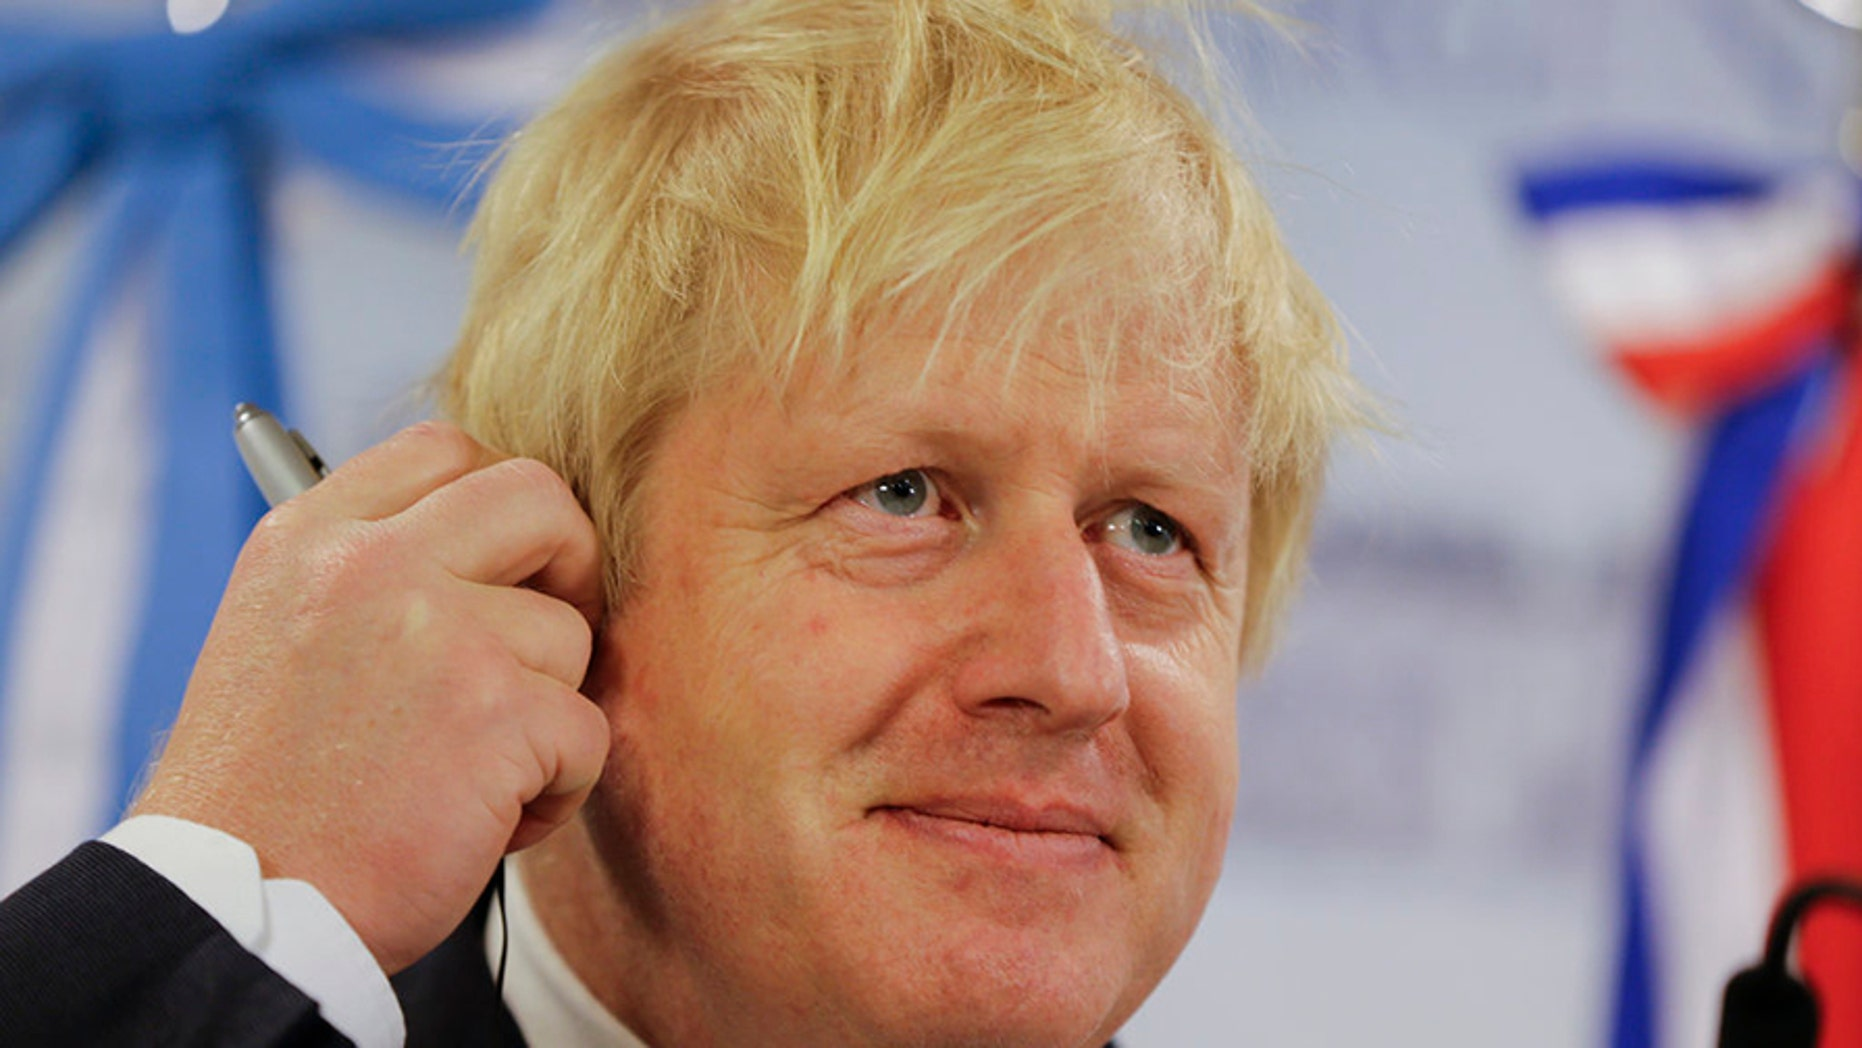 Boris Johnson has suggested Trump would handle Brexit negotiations better than the British government.